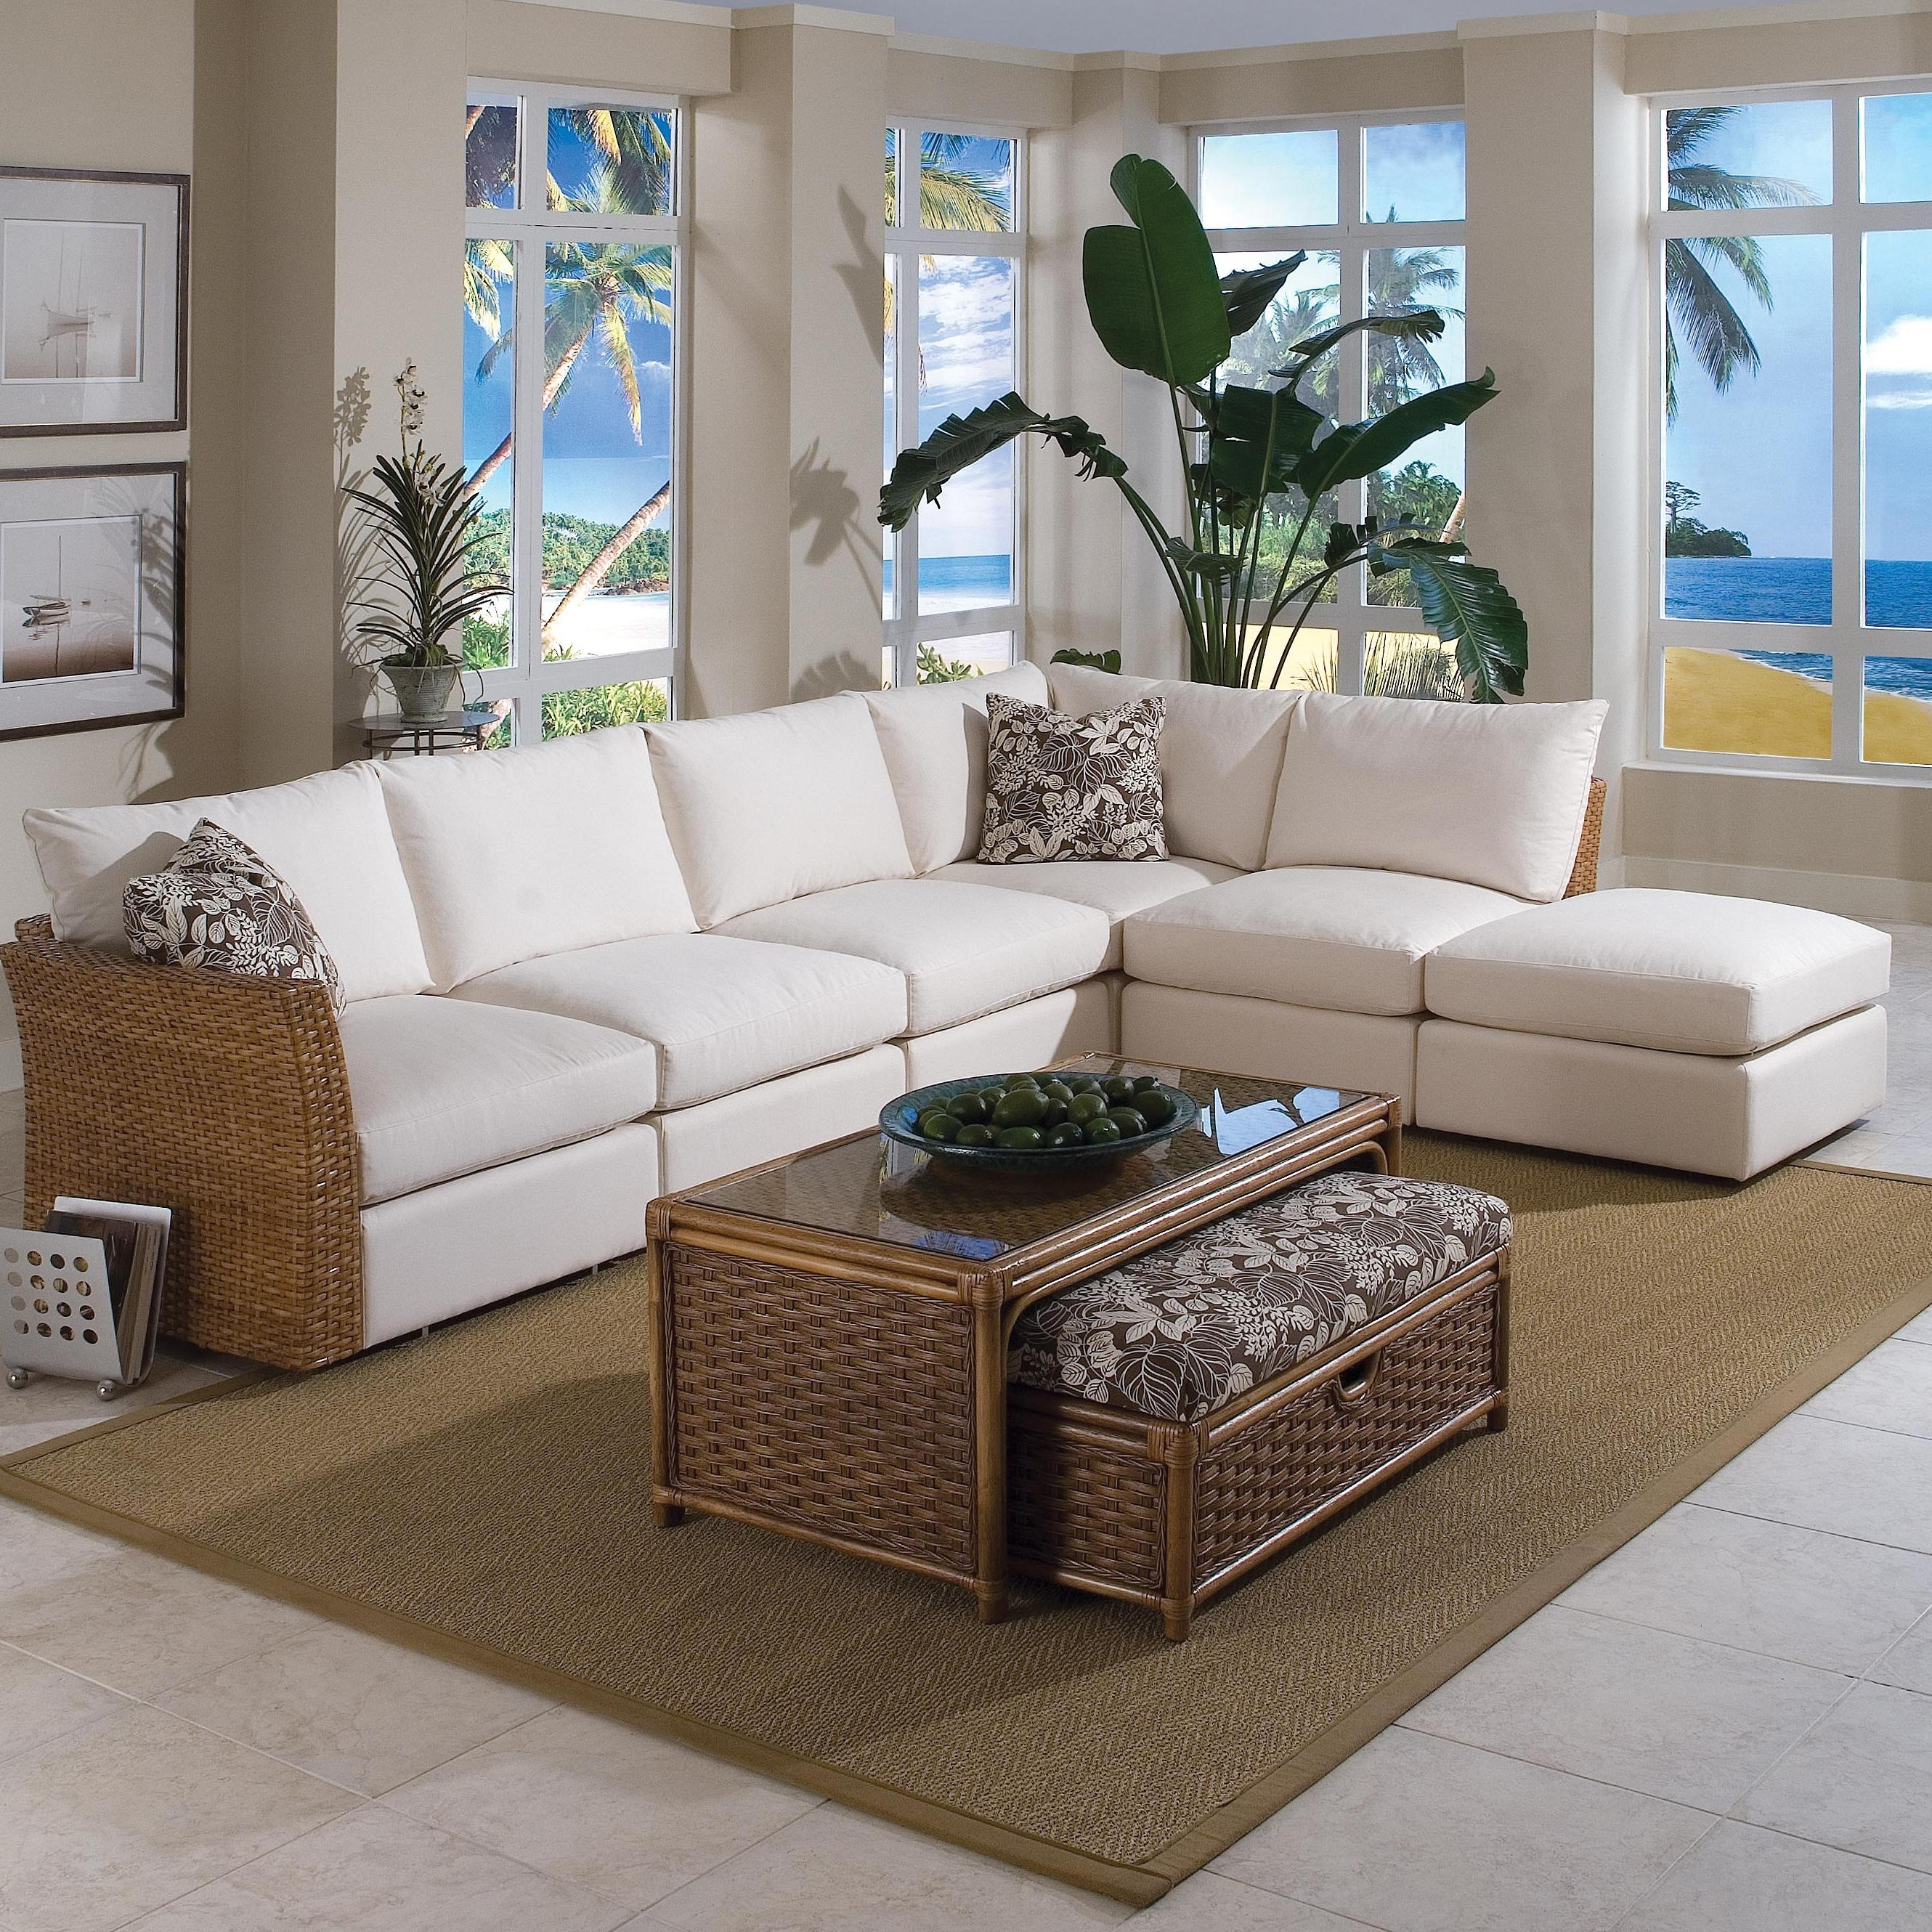 Braxton Culler Grand Water Point Tropical Sectional Sofa With Two Inside Widely Used Naples Fl Sectional Sofas (View 2 of 20)